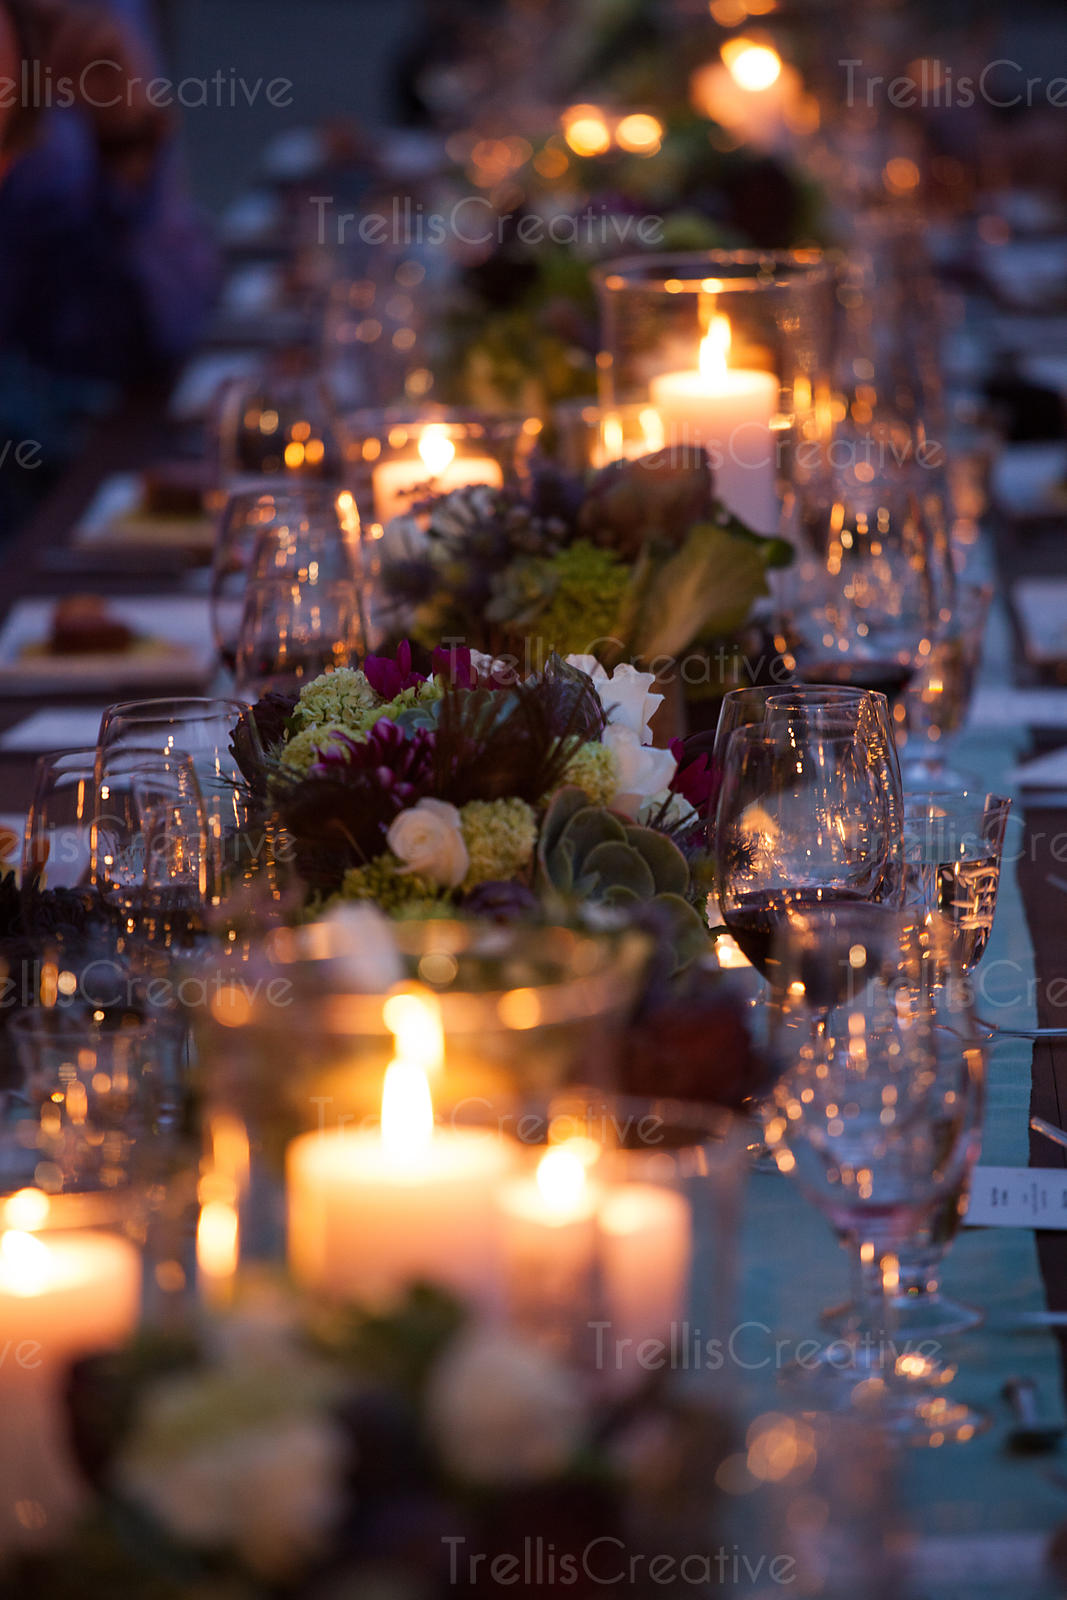 A candlelit dinner table at an elegant party.